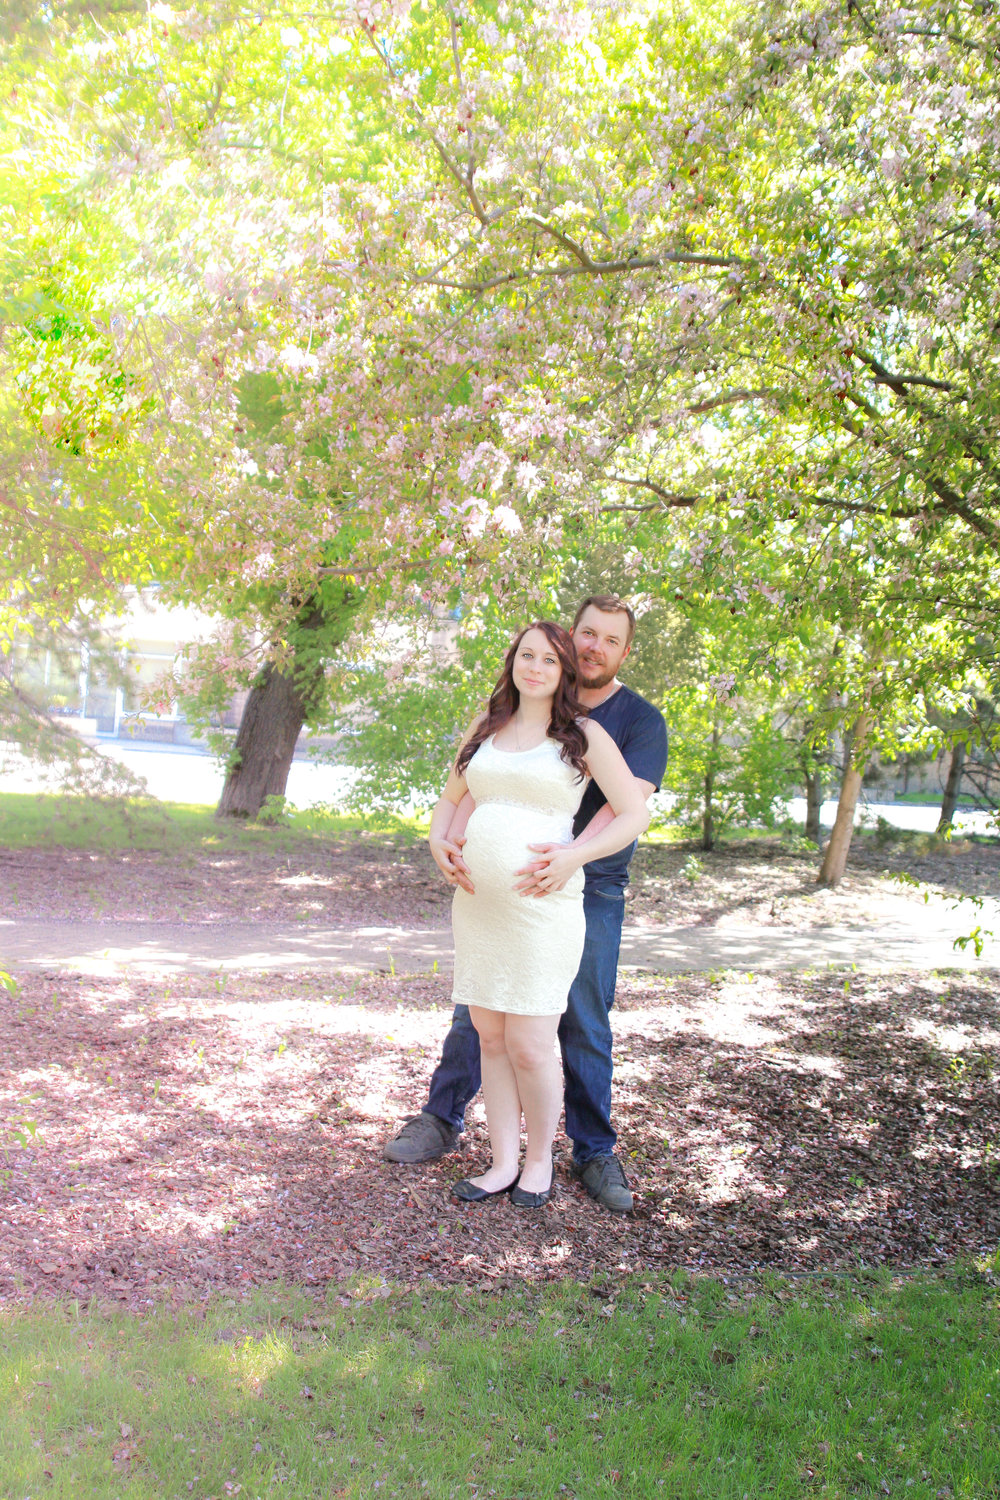 M&P {Expecting!}_WEB-51.jpg